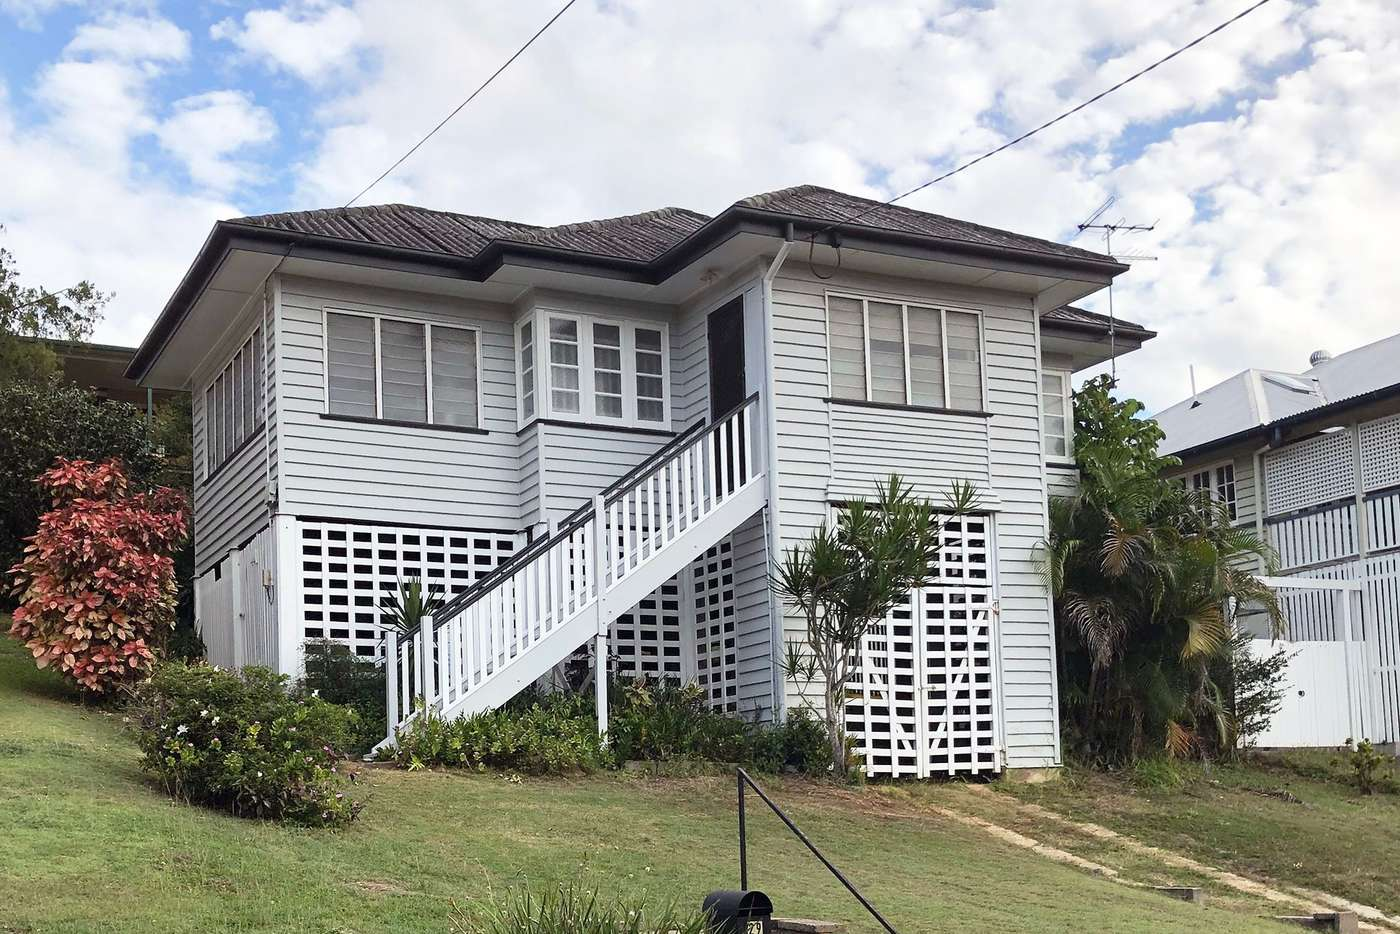 Main view of Homely house listing, 29 Oxley Drive, Holland Park QLD 4121